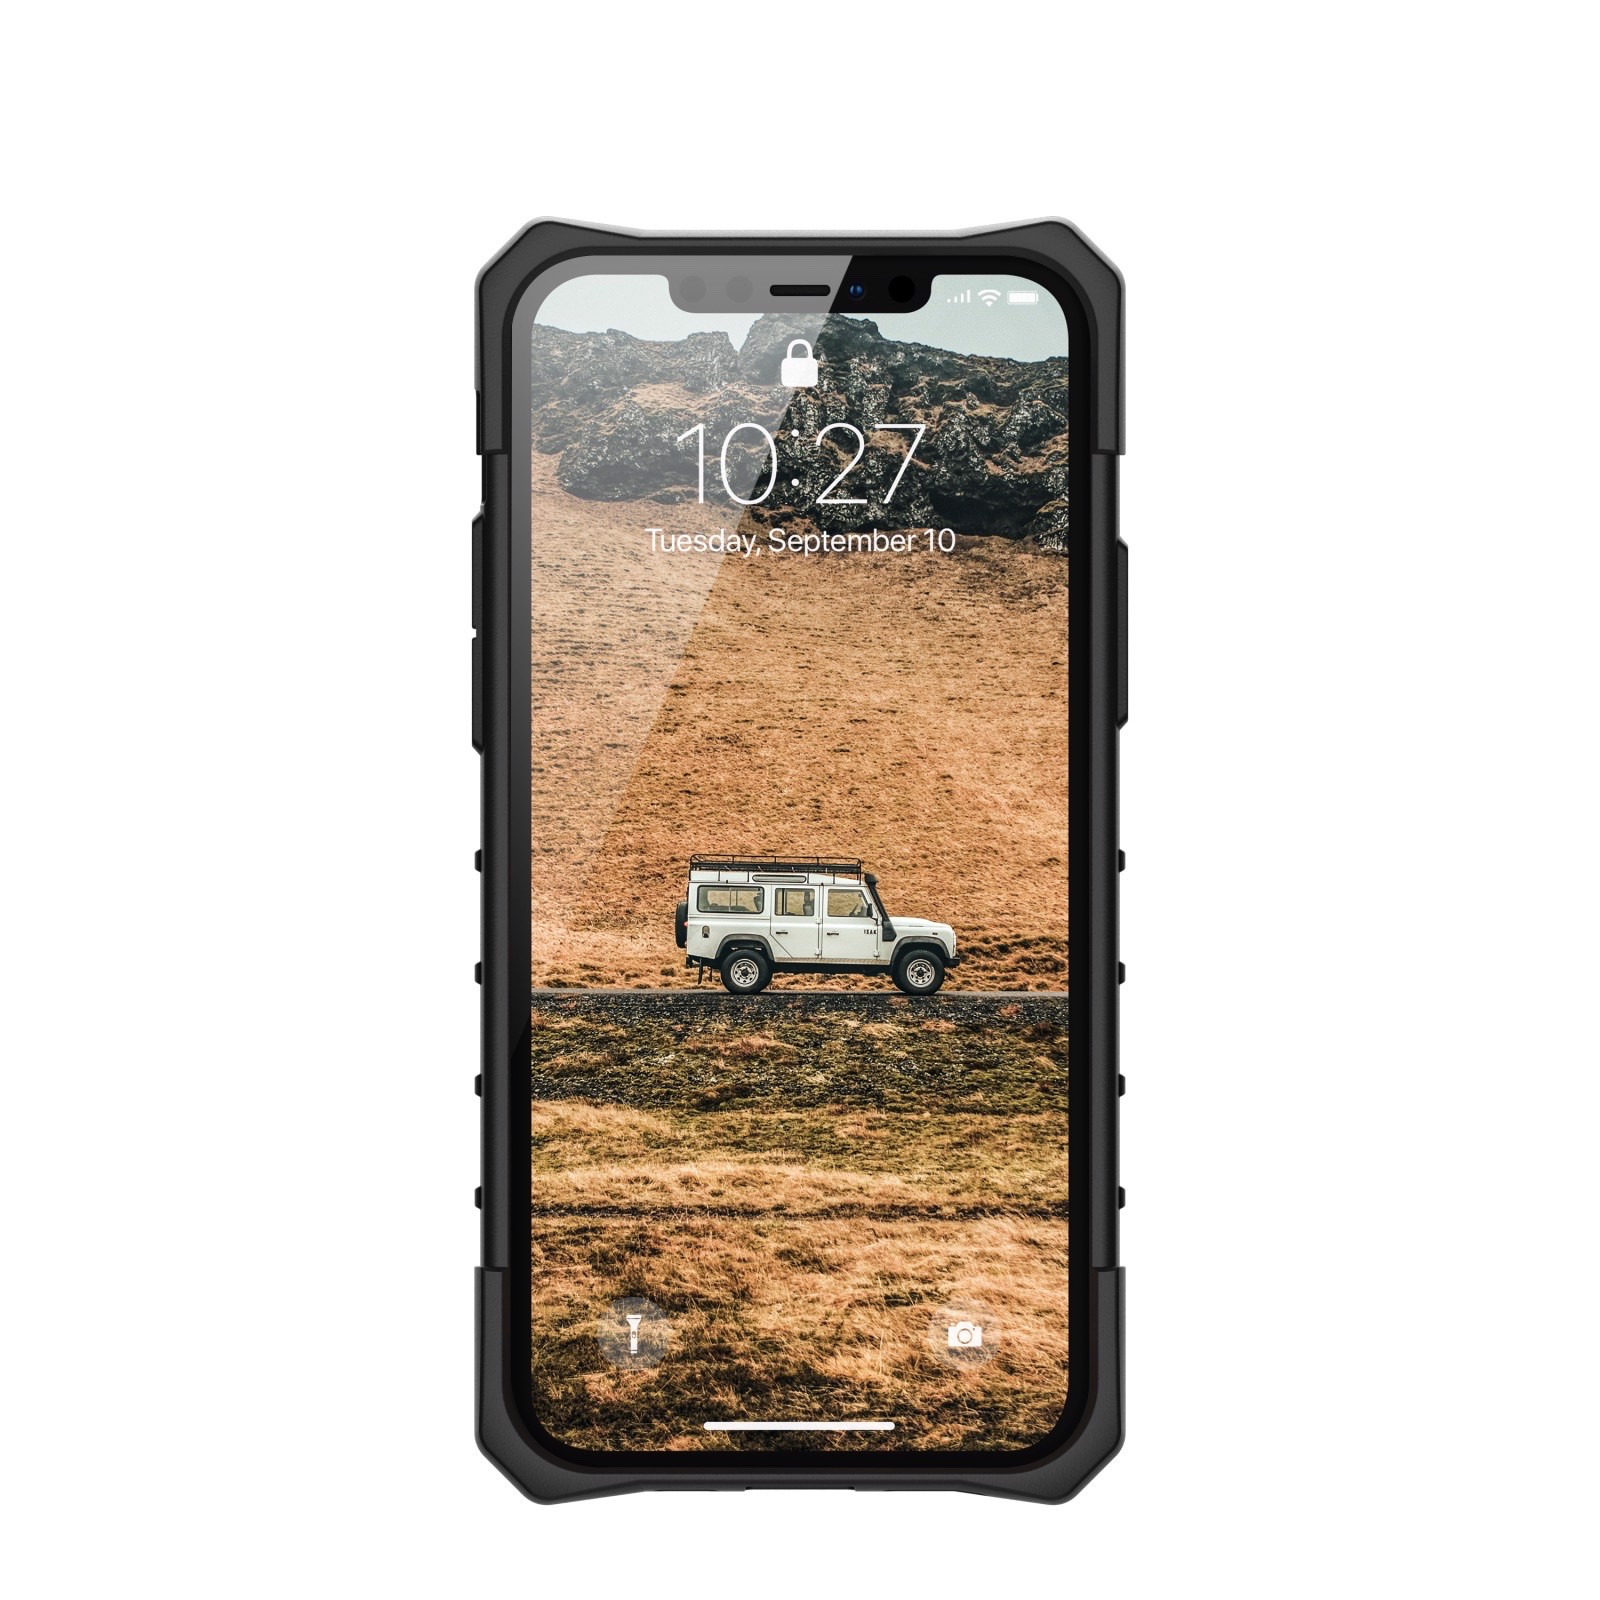 ỐP LƯNG UAG PATHFINDER SE CHO IPHONE 12 PRO ( 6.1-INCH ) Forest Green Camo